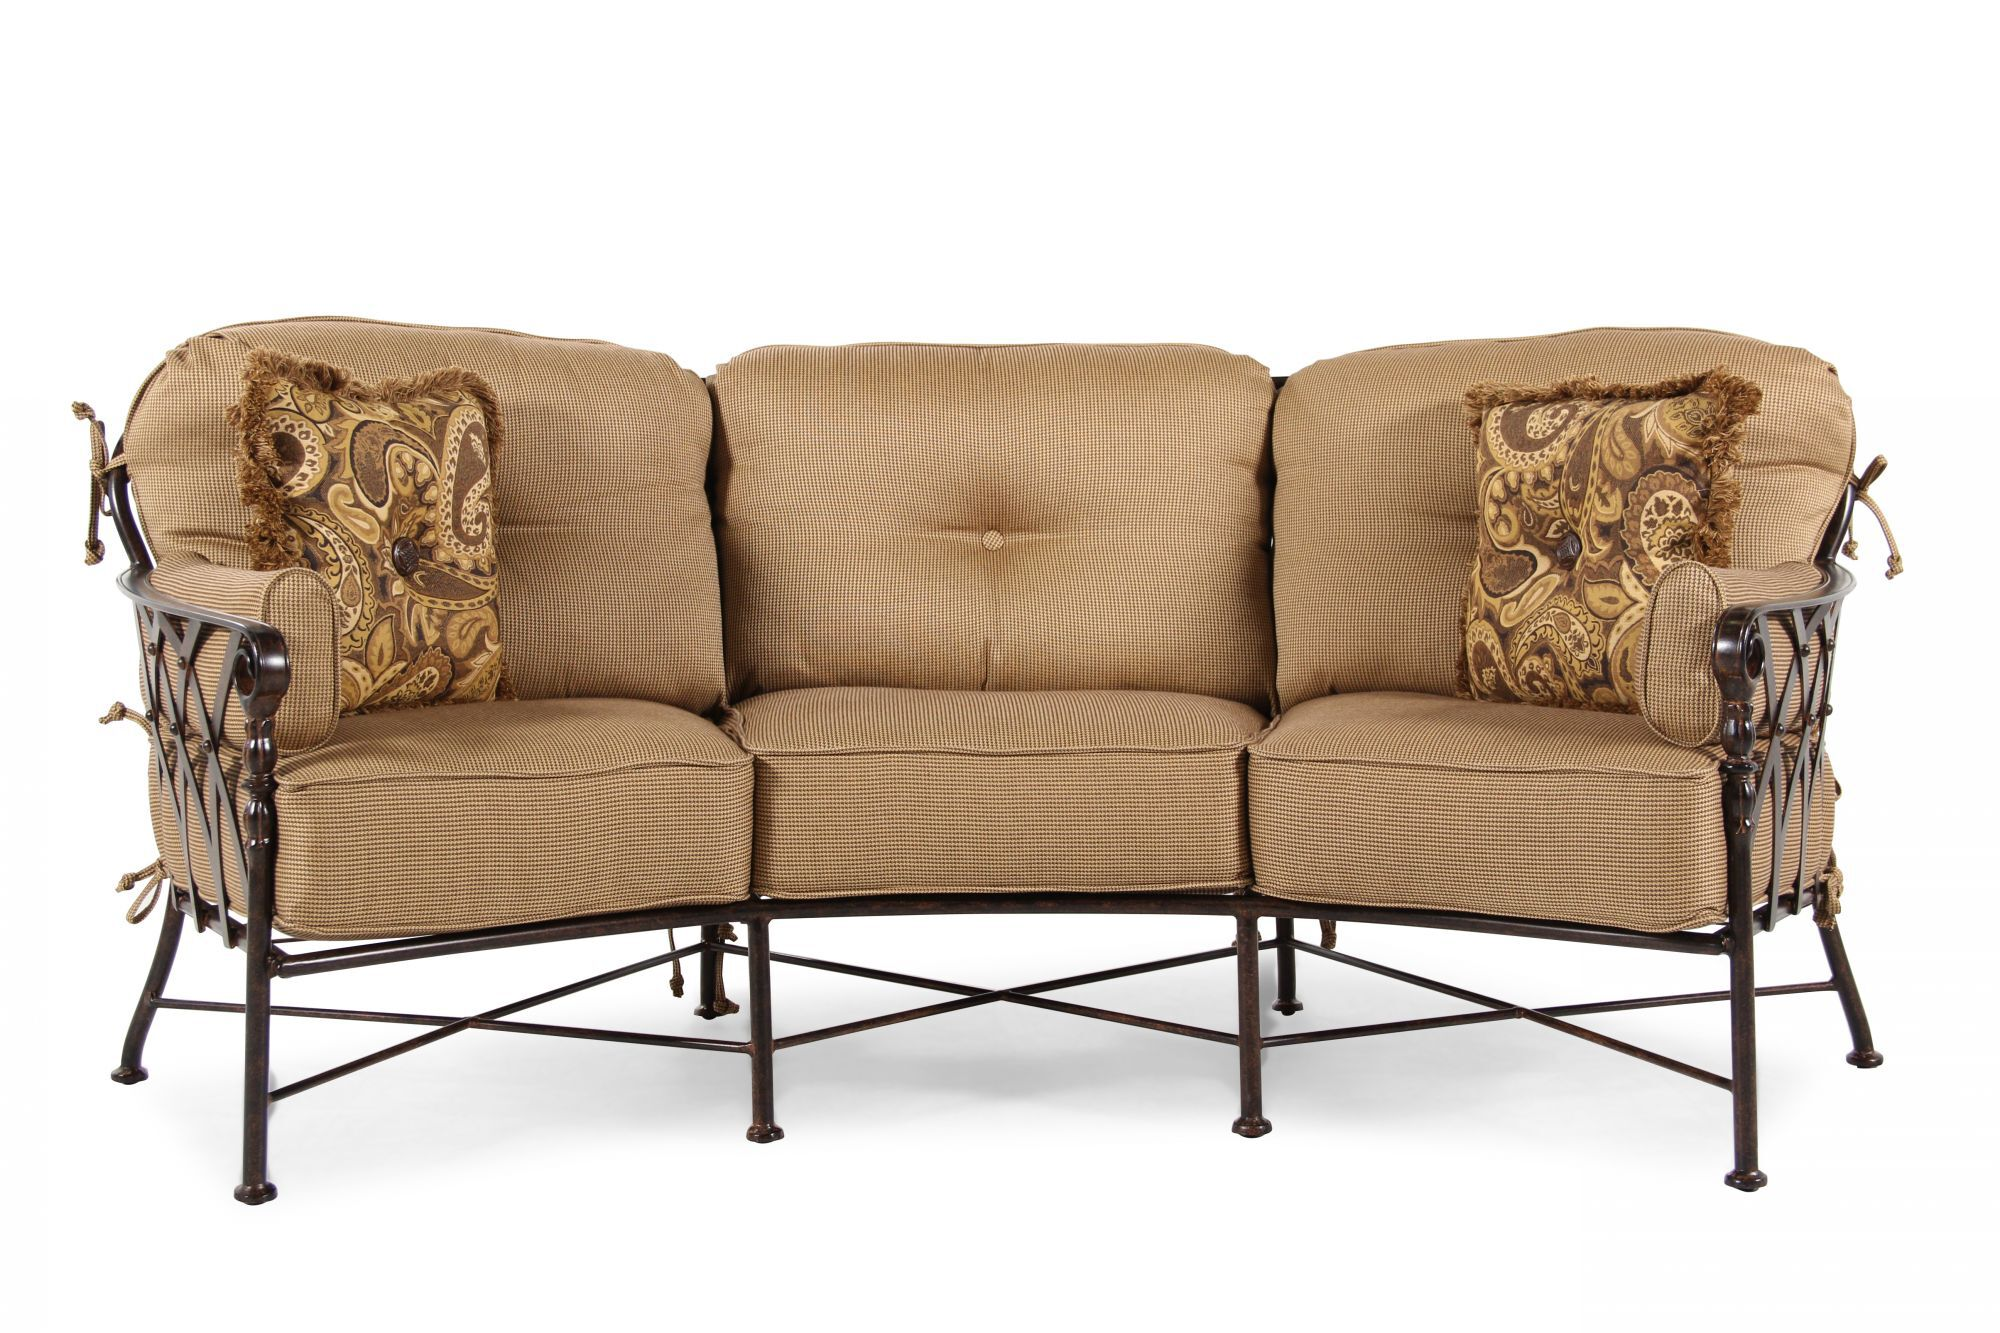 camerich sofa review used camper sofas crescent custom curved shape avelle 232 fabric